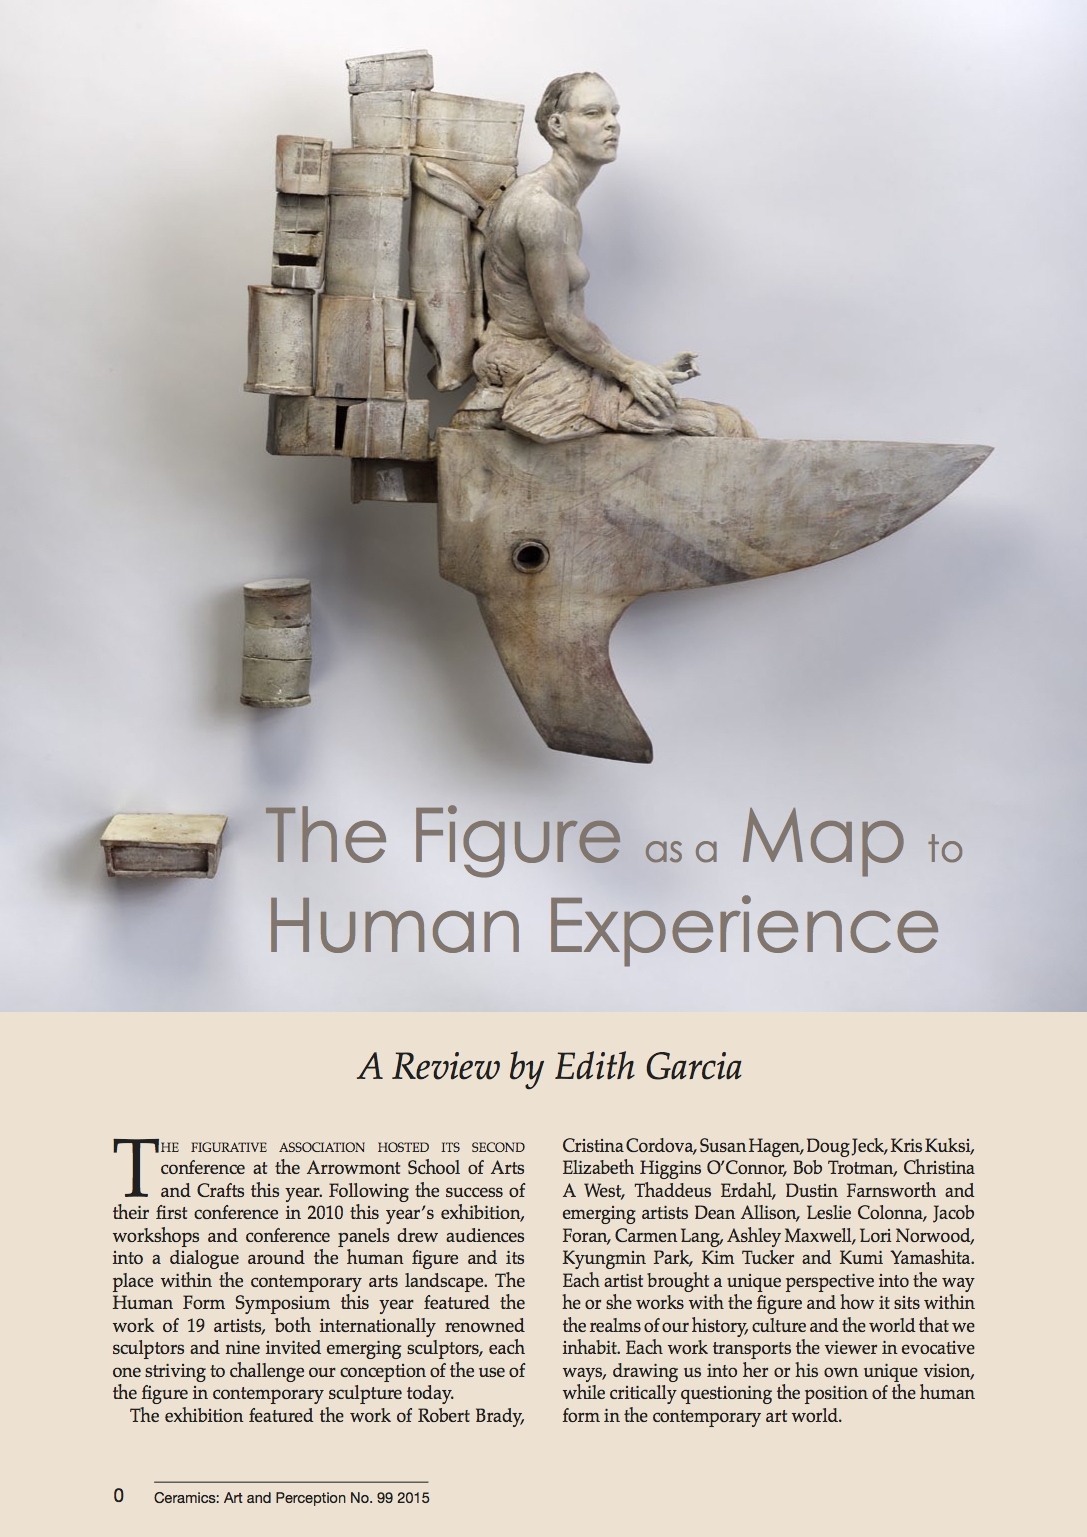 The Figure as a Map to Human Experience - Ceramics: Art and Perception MagazineFIGURATIVE ASSOCIATION: THE HUMAN FORMGuest Symposium Writer and Closing SpeakerAuthor of The Figure as a Map to Human ExperienceThe figurative association hosted its second conference at the Arrowmont School of Arts and Crafts this year. Following the success of their first conference in 2010 this year's exhibition, workshops and conference panels drew audiences into a dialogue around the human figure and its place within the contemporary arts landscape. The Human Form Symposium this year featured the work of 19 artists, both internationally renowned sculptors and nine invited emerging sculptors, each one striving to challenge our conception of the use of the figure in contemporary sculpture today.The exhibition featured the work of Robert Brady, Cristina Cordova, Susan Hagen, Doug Jeck, Kris Kuksi, Elizabeth Higgins O'Connor, Bob Trotman, Christina A West, Thaddeus Erdahl, Dustin Farnsworth and emerging artists Dean Allison, Leslie Colonna, Jacob Foran, Carmen Lang, Ashley Maxwell, Lori Norwood, Kyungmin Park, Kim Tucker and Kumi Yamashita. Each artist brought a unique perspective into the way he or she works with the gure and how it sits within the realms of our history, culture and the world that we inhabit. Each work transports the viewer in evocative ways, drawing us into her or his own unique vision, while critically questioning the position of the human form in the contemporary art world.